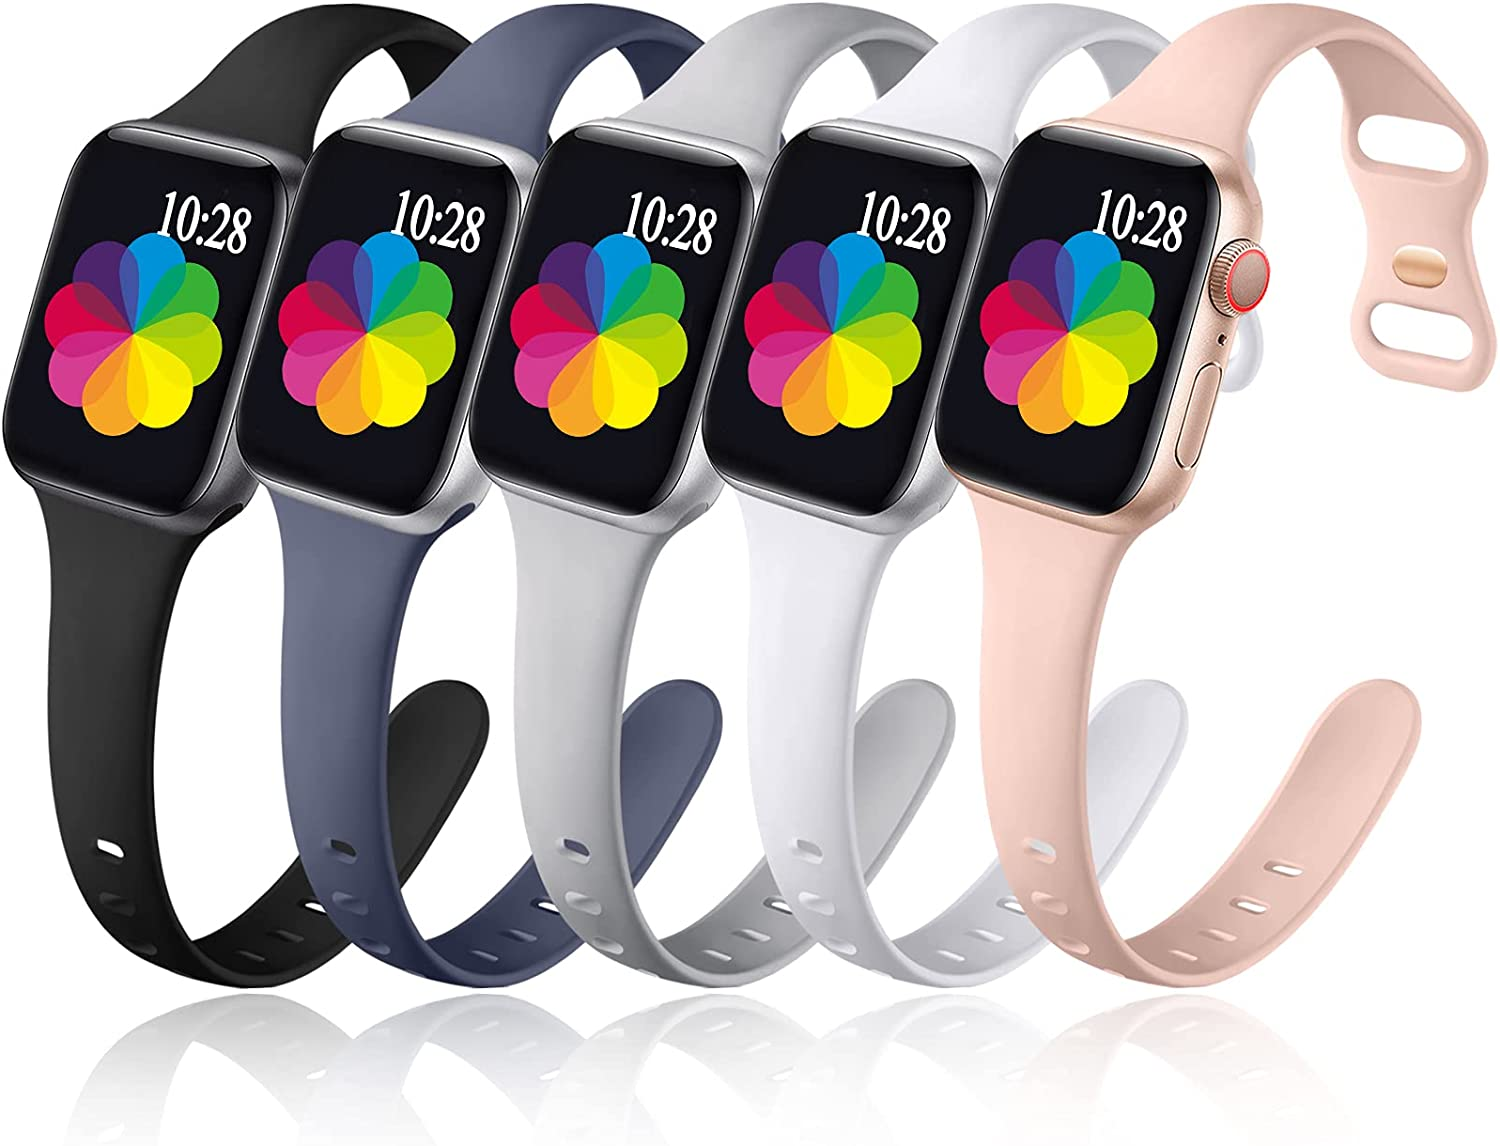 Muranne 5 Pack Bands Compatible with Apple Watch 41mm 40mm 38mm 42mm 44mm 45mm iWatch SE & Series7 6 5 4 3 2 1 for Women Men, Cute Slim Narrow Water Resistant Silicone Sport Replacement Wrist Strap